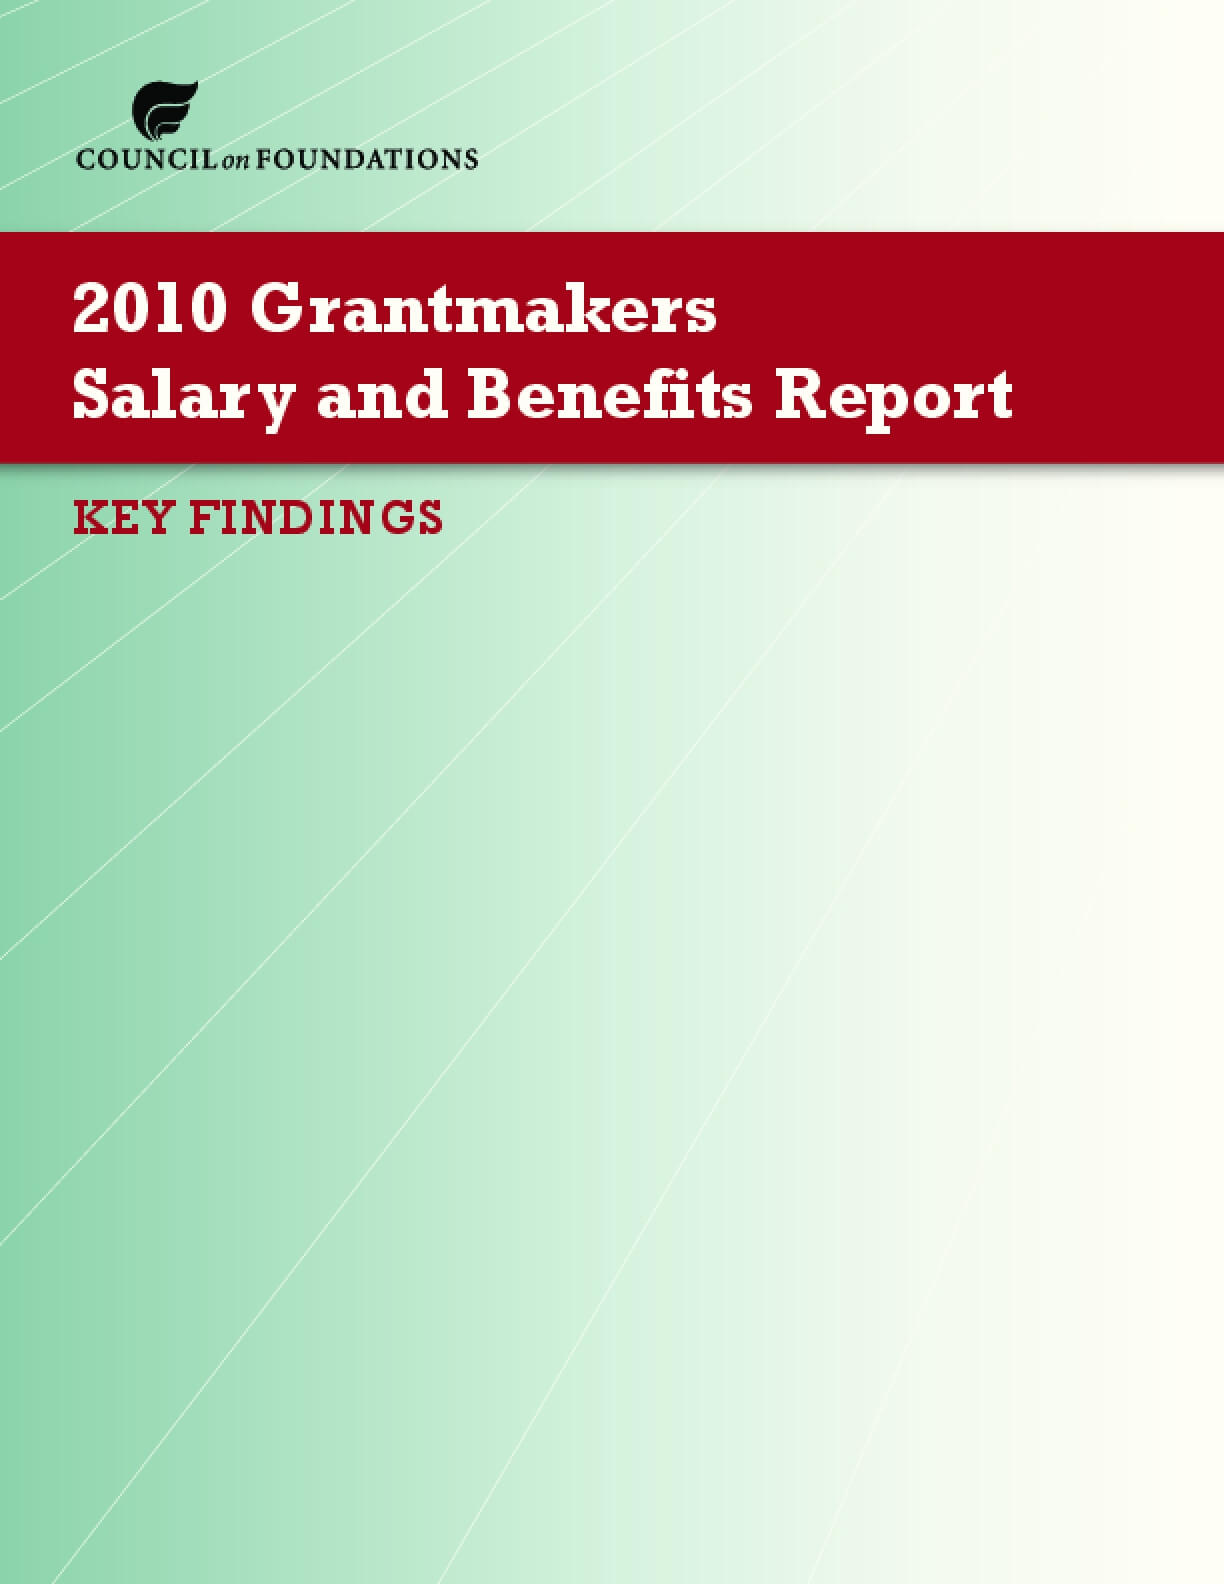 2010 Grantmakers Salary and Benefits Report - Key Findings